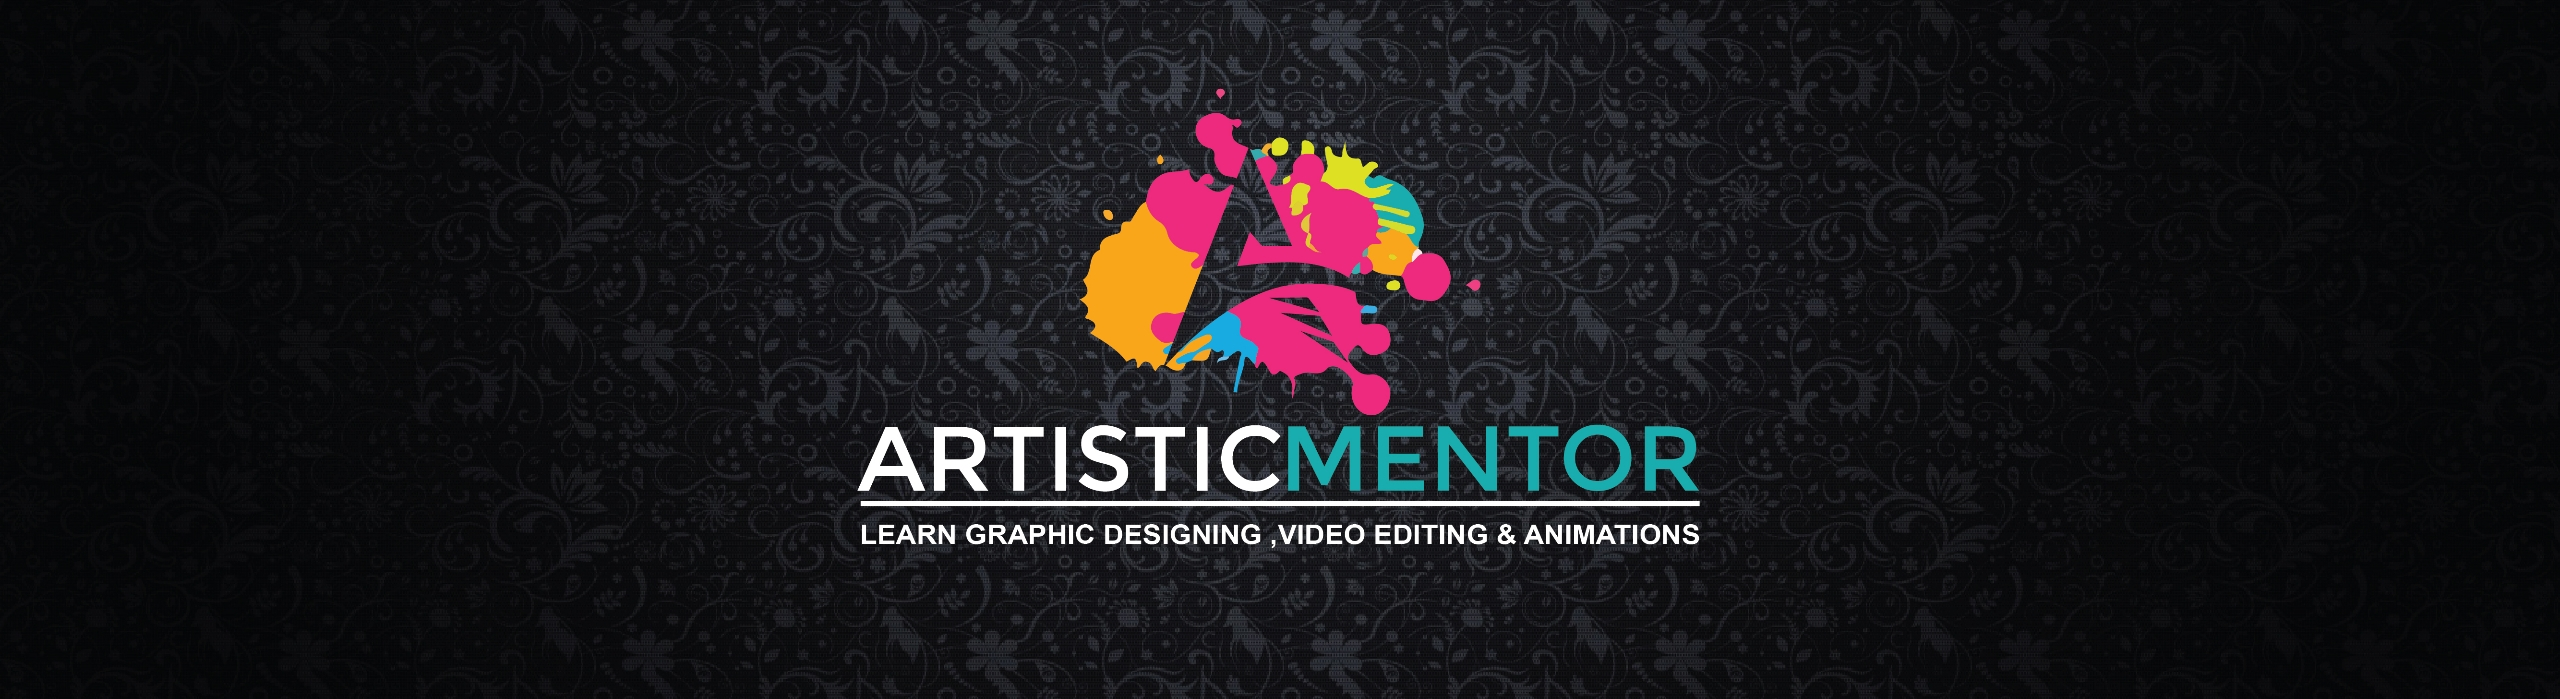 Artistic Mentor (@artisticmentor) Cover Image